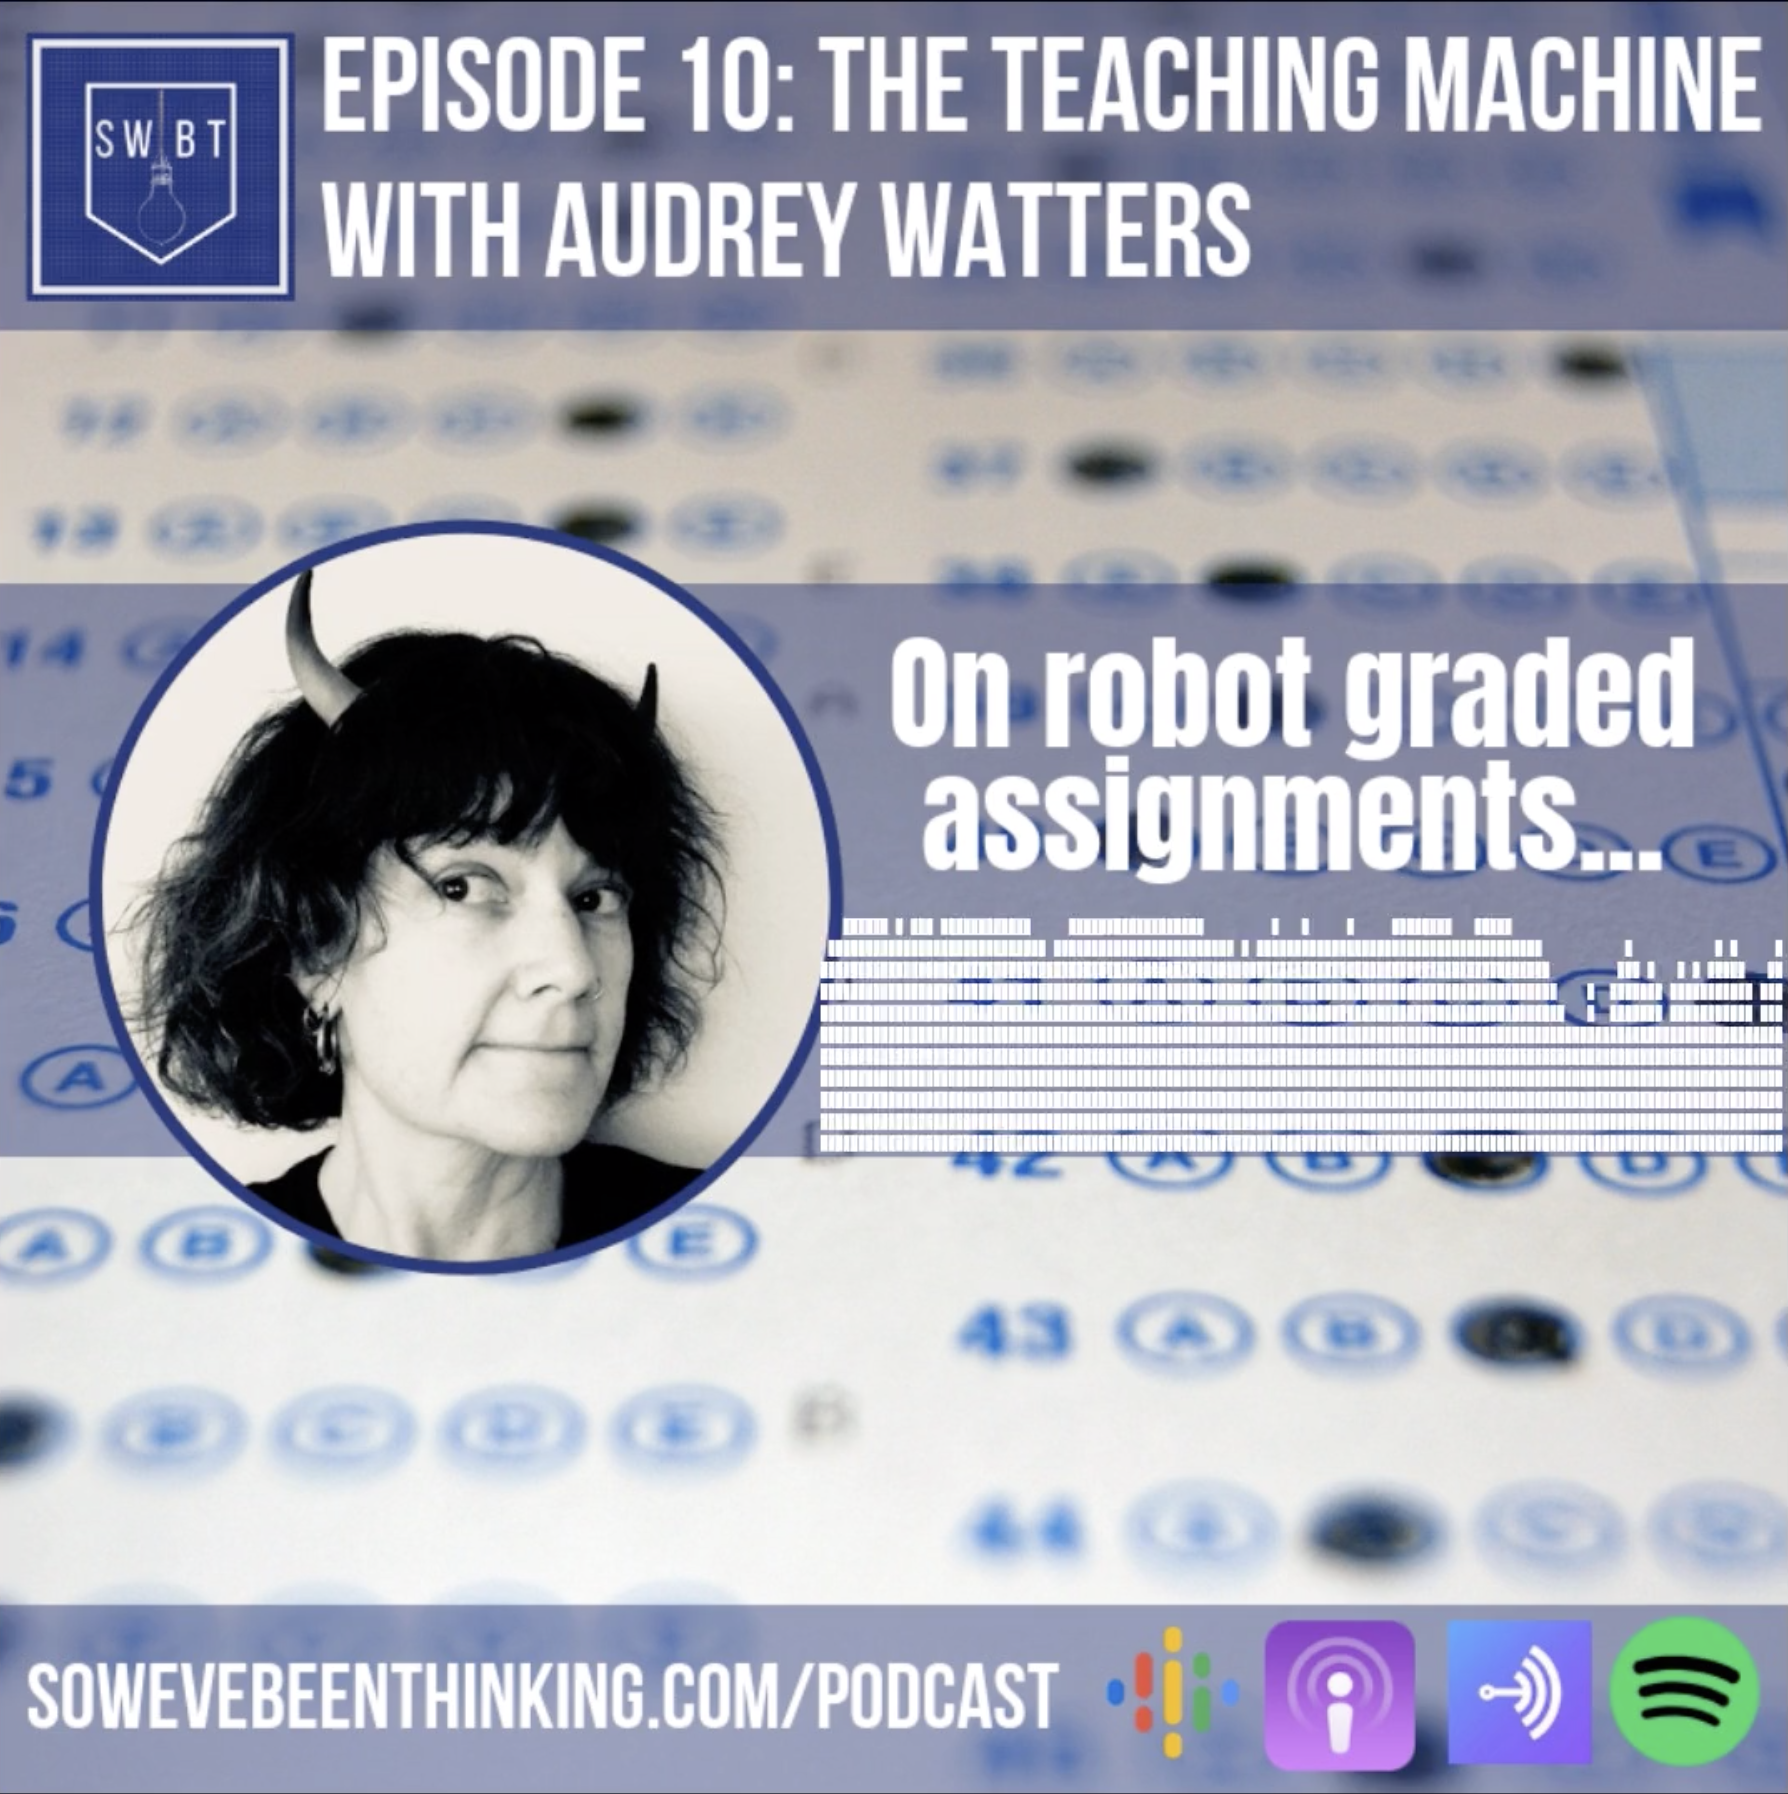 Episode 10: The Teaching Machine - with Audrey Watters -